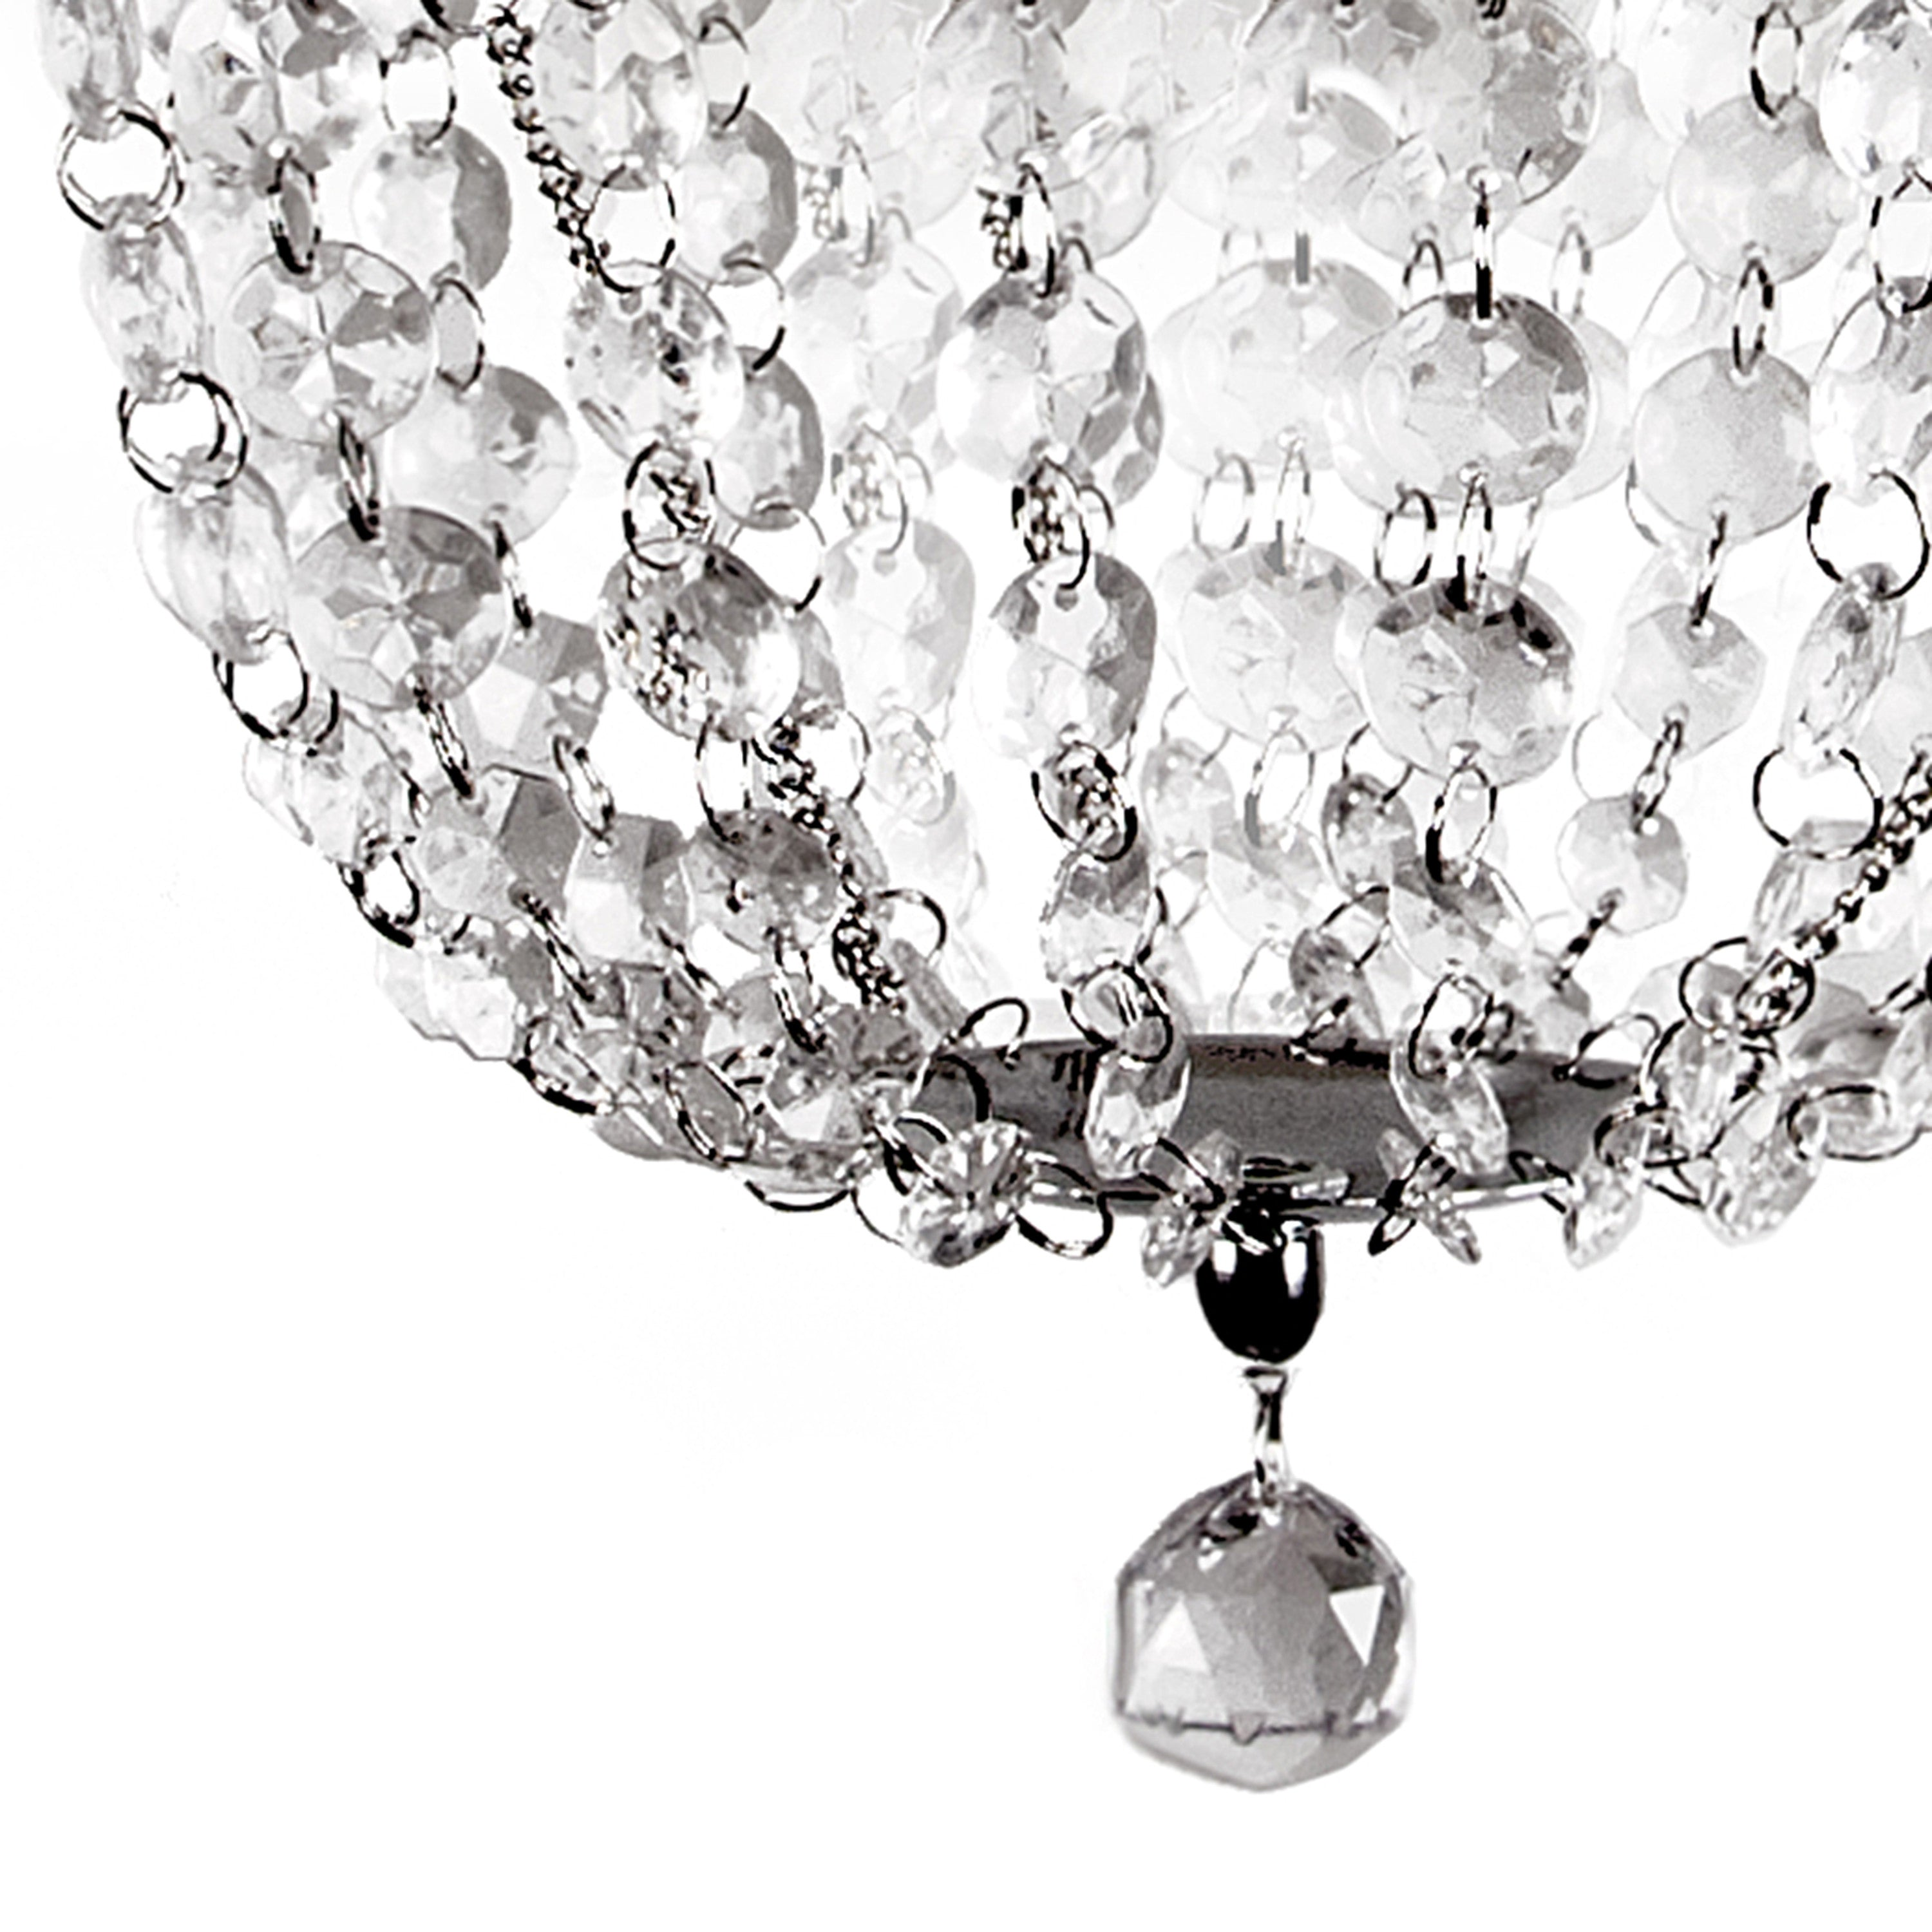 glimmers light unique interiors of pin pendant tiers crystal for s glass this elegant lighting a today look modern with sophisticated and globe chandelier